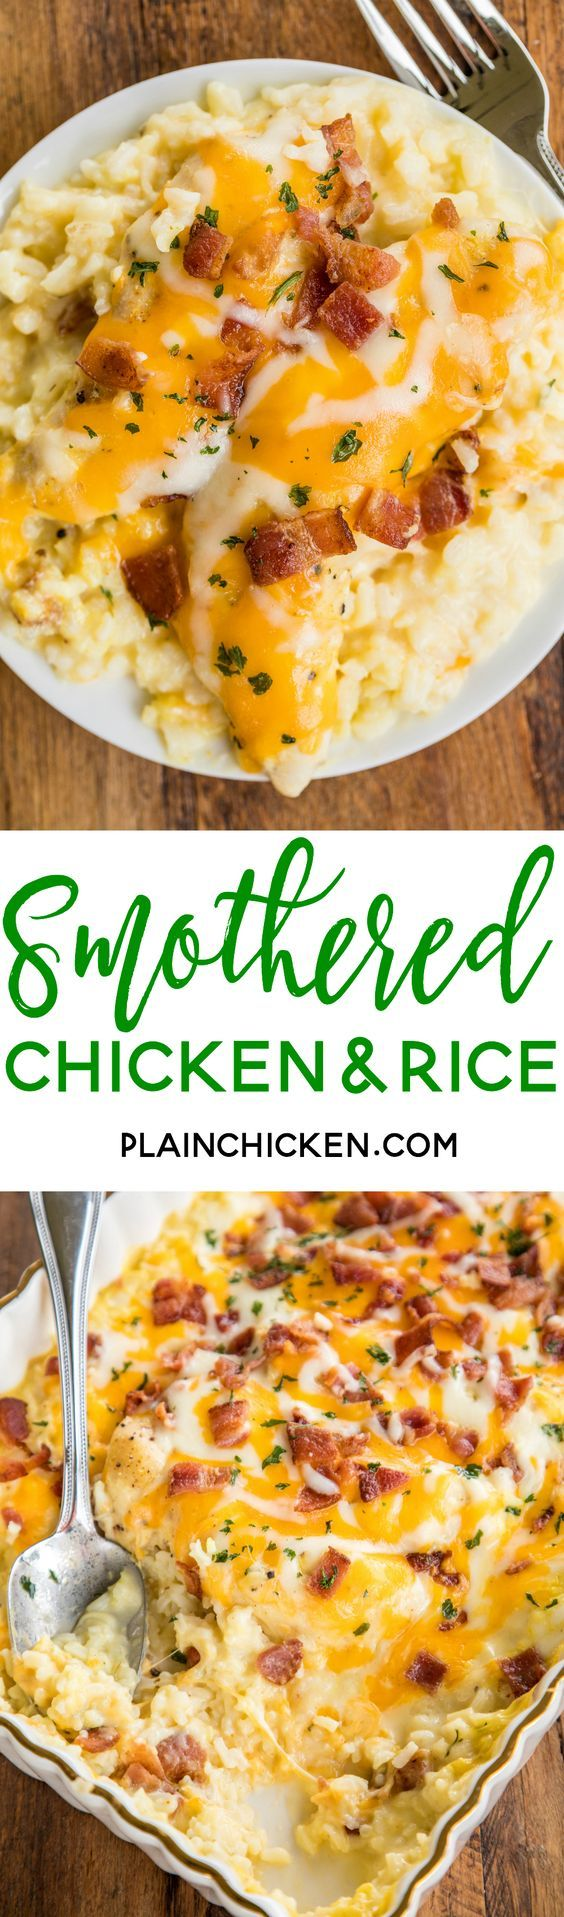 Smothered Chicken and Rice - seriously delicious! Everyone cleaned their plate and asked for seconds! That never happens at our house!!! Chicken and rice baked in cream of chicken soup, milk, cheddar, mozzarella and bacon. Ready to bake in a snap and on the table in 30 minutes. We make this at least once a month!! SO GOOD!! : plainchicken